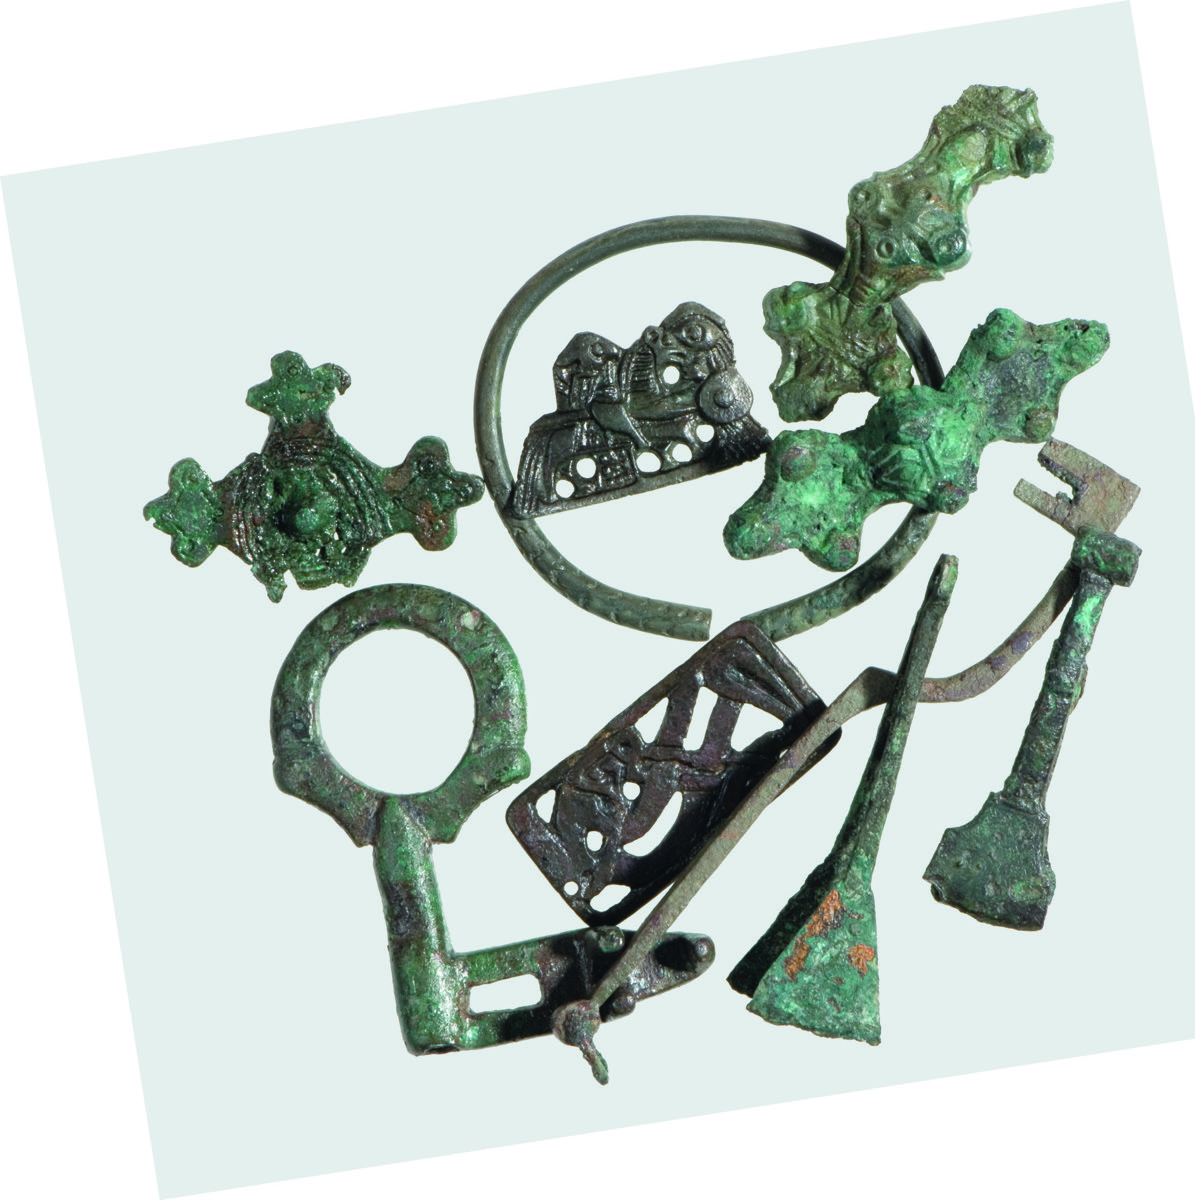 a bunch of decaying artifacts of metal keys, tweezers, brooches, and a ring